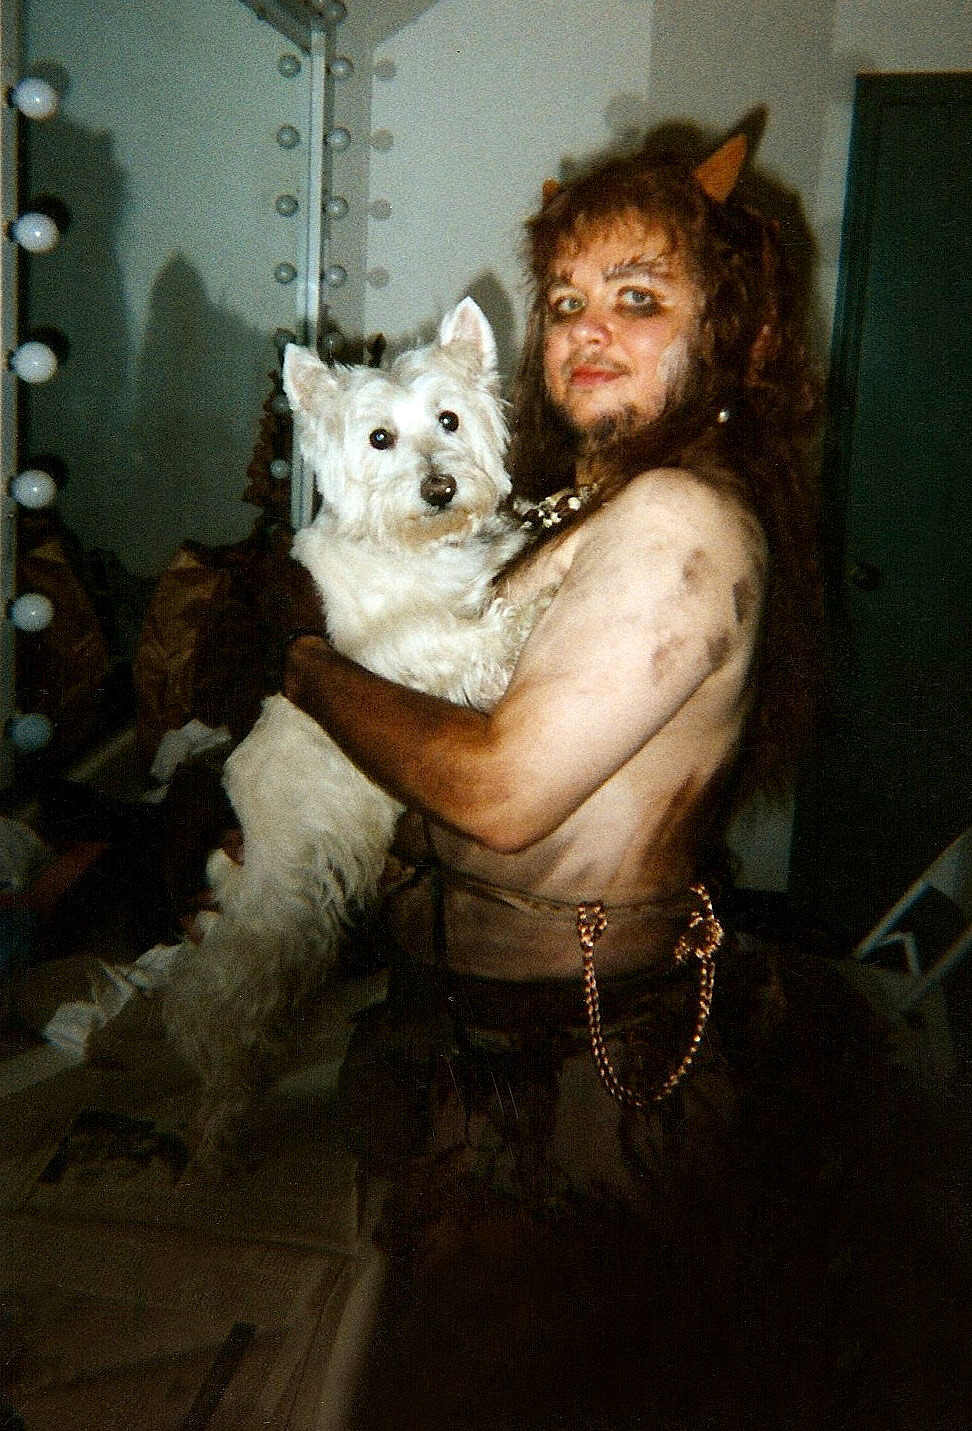 Backstage at Glimmerglass Opera: As Pan in  La Calisto  with Jocko the Westie.